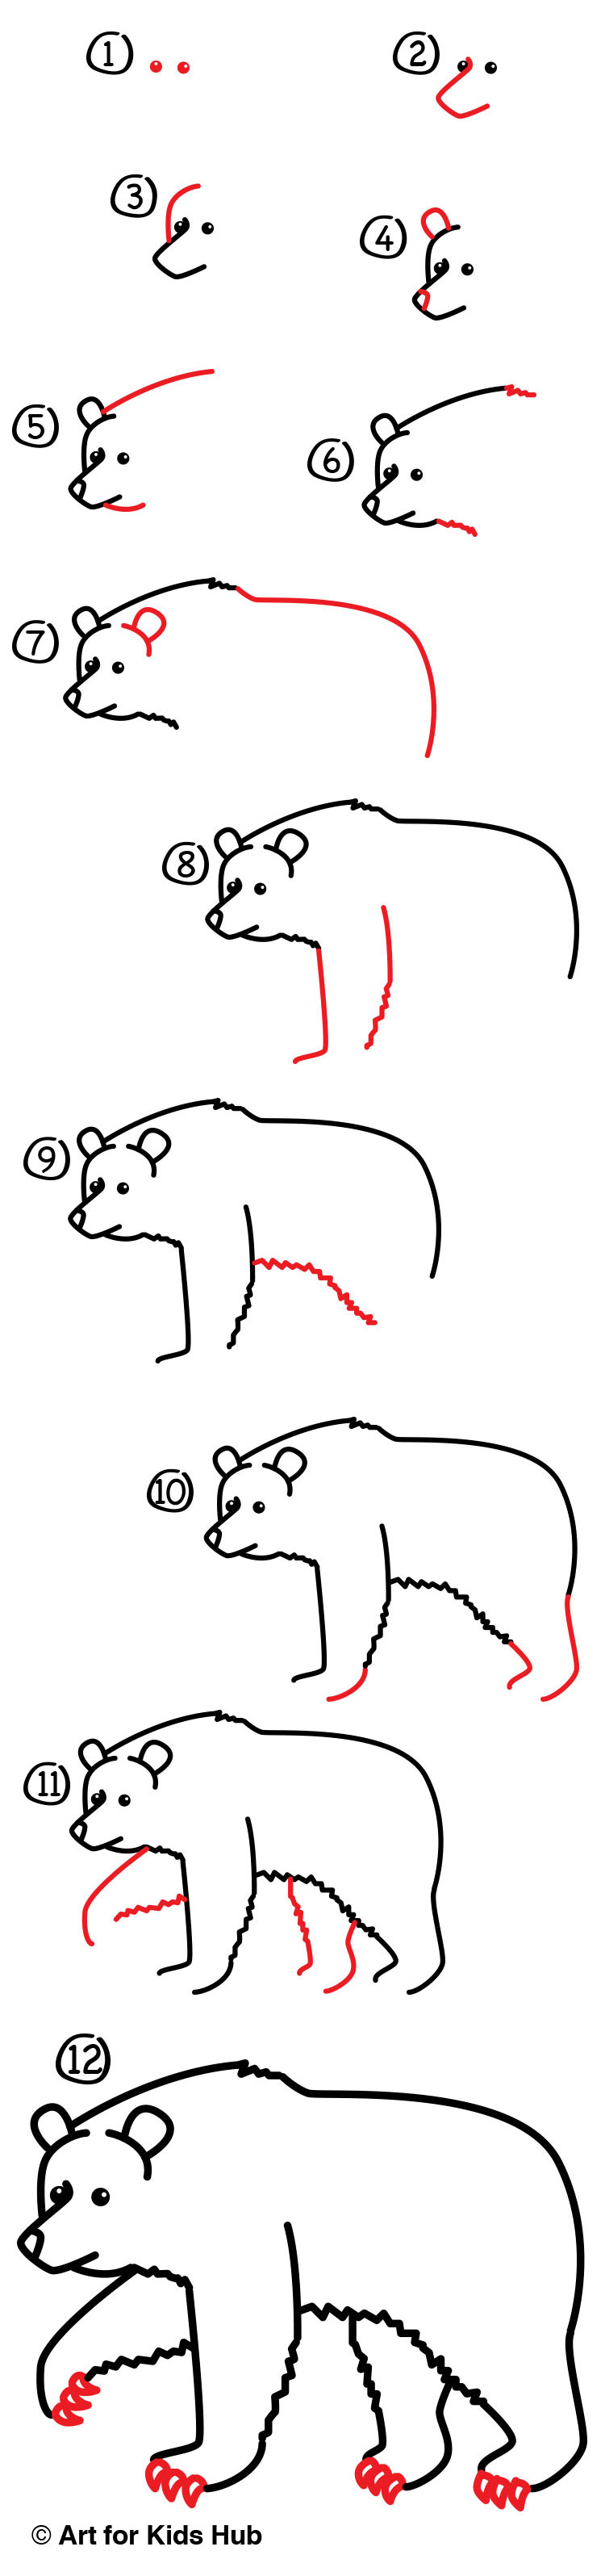 How to draw a grizzly bear realistic art for kids hub grab something to draw with and follow along today were learning how to draw a grizzly bear thecheapjerseys Images